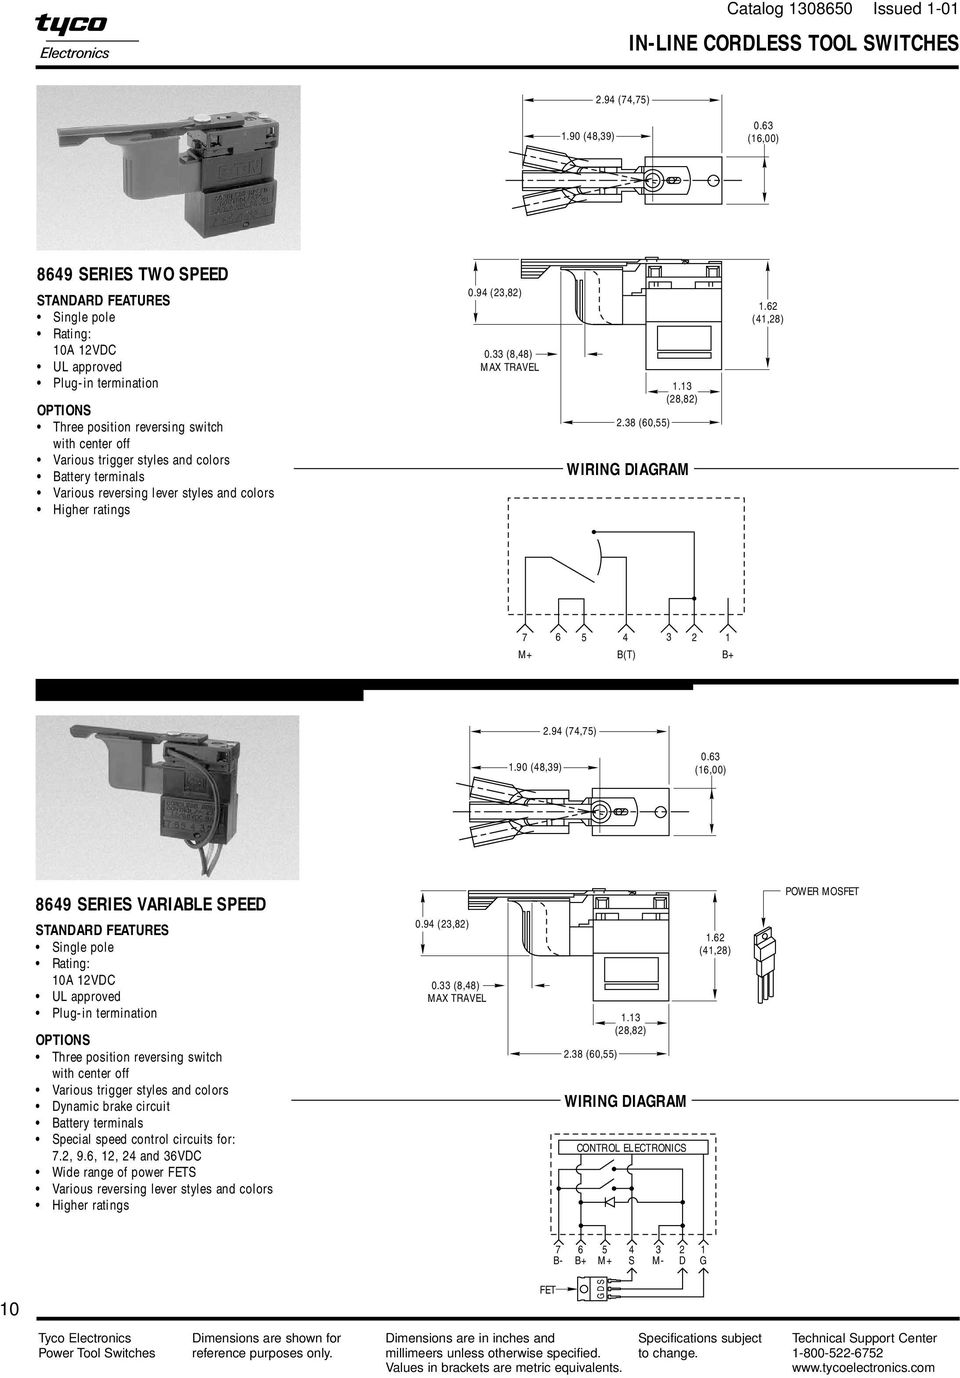 Power Tool Switches Catalog Issued Pdf 3 Phase Reversing Motor Wiring Diagram Single Pole Double Throw A Using 33 848 Max Travel 238 6055 113